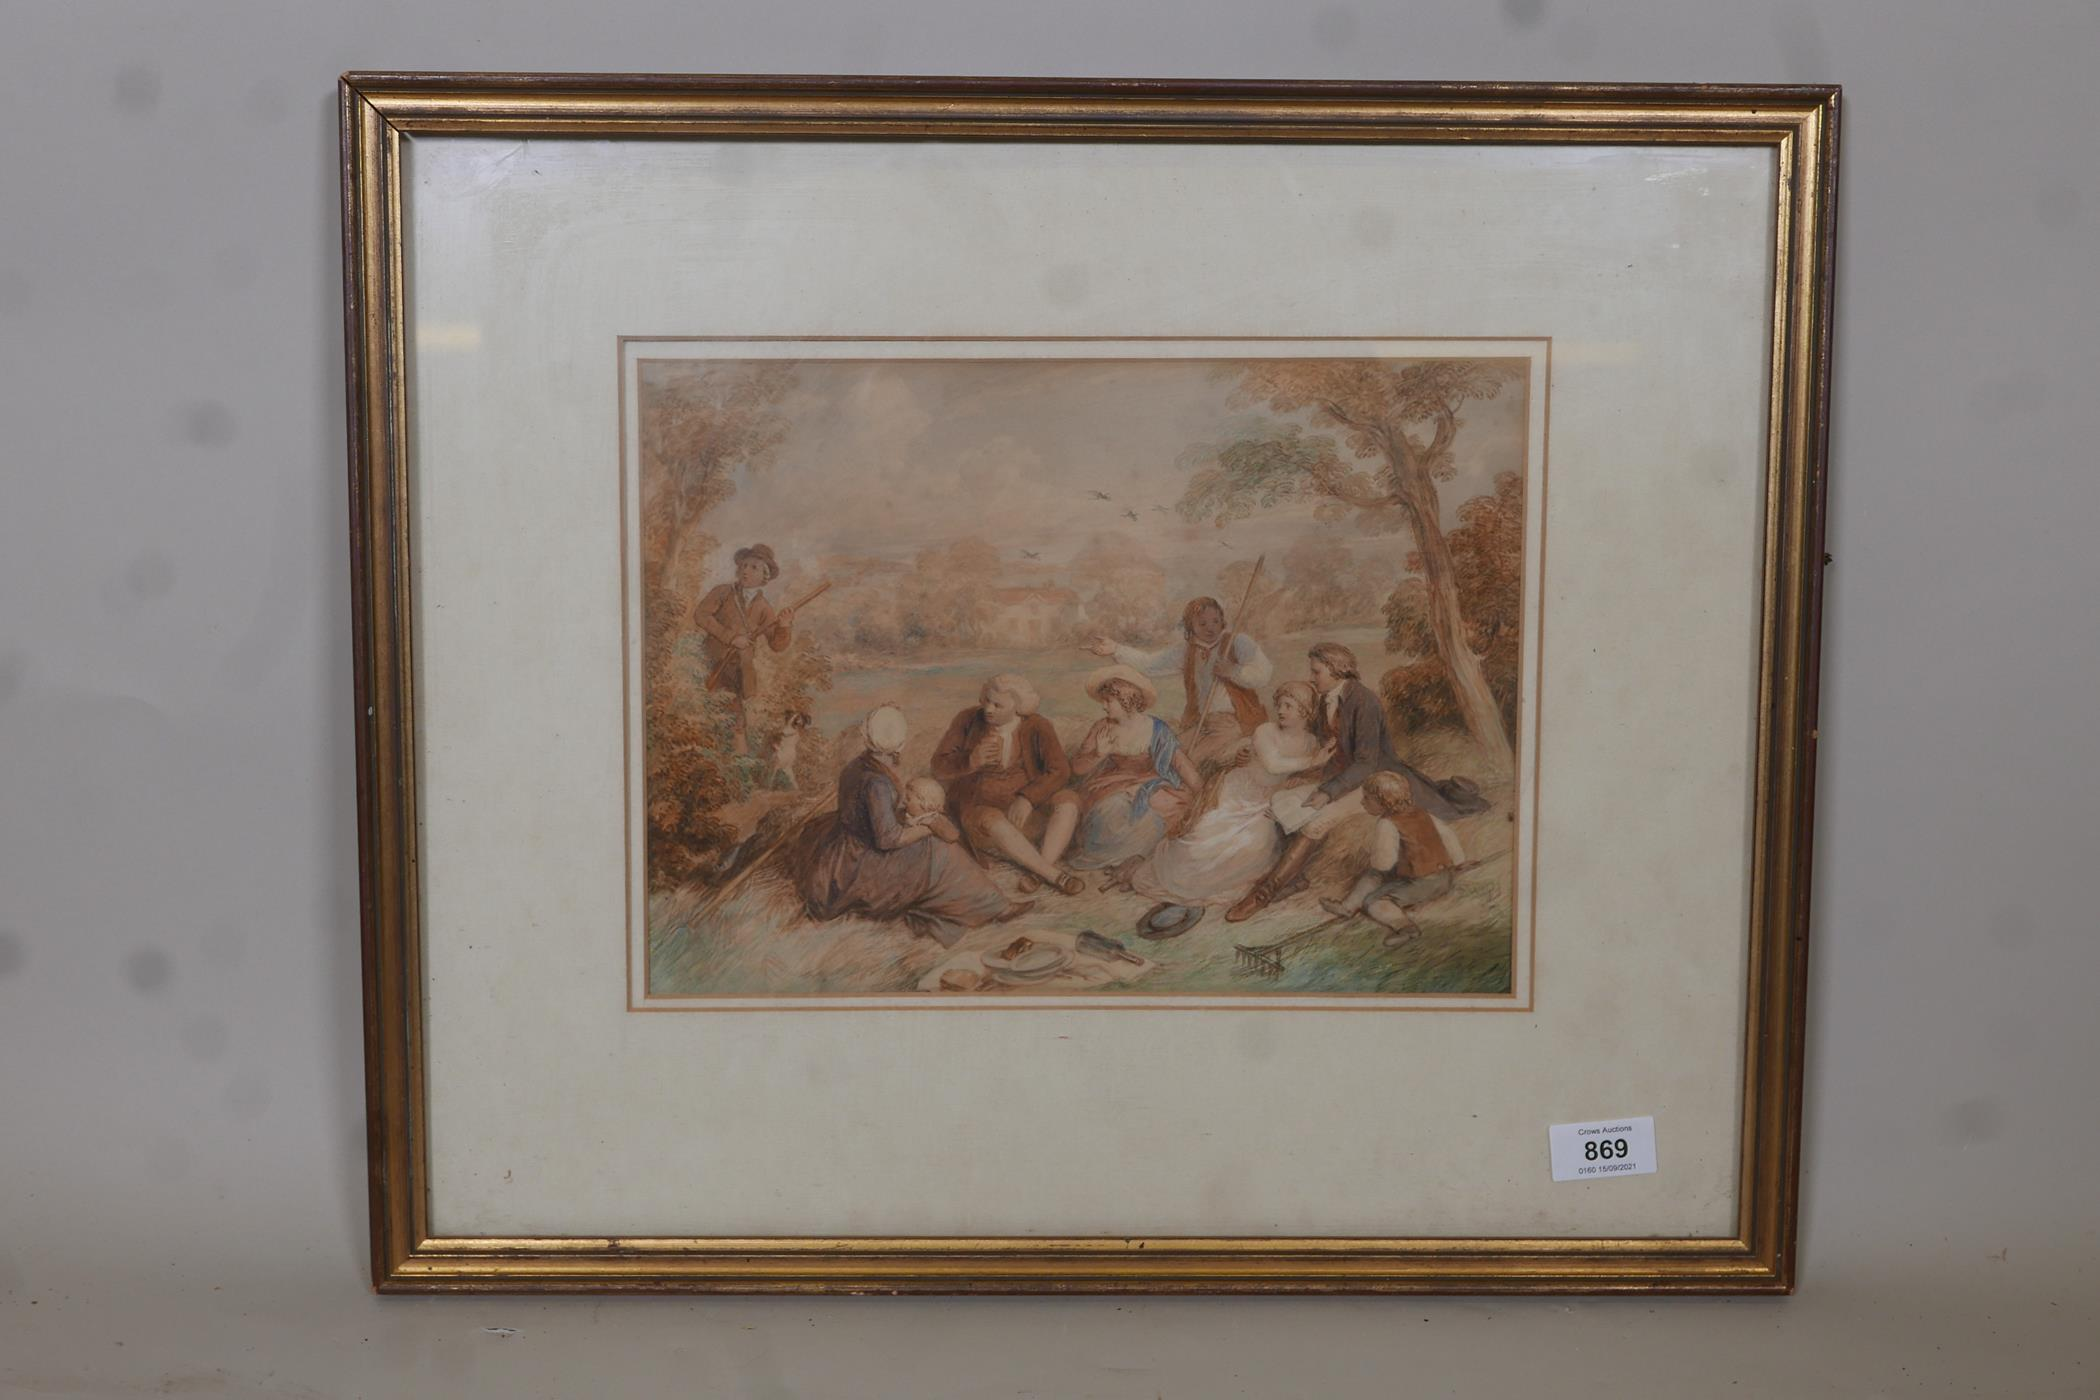 """Attributed to John Massey Wright, a break from the harvest, watercolour, unsigned, 12"""" x 9"""" - Image 2 of 3"""